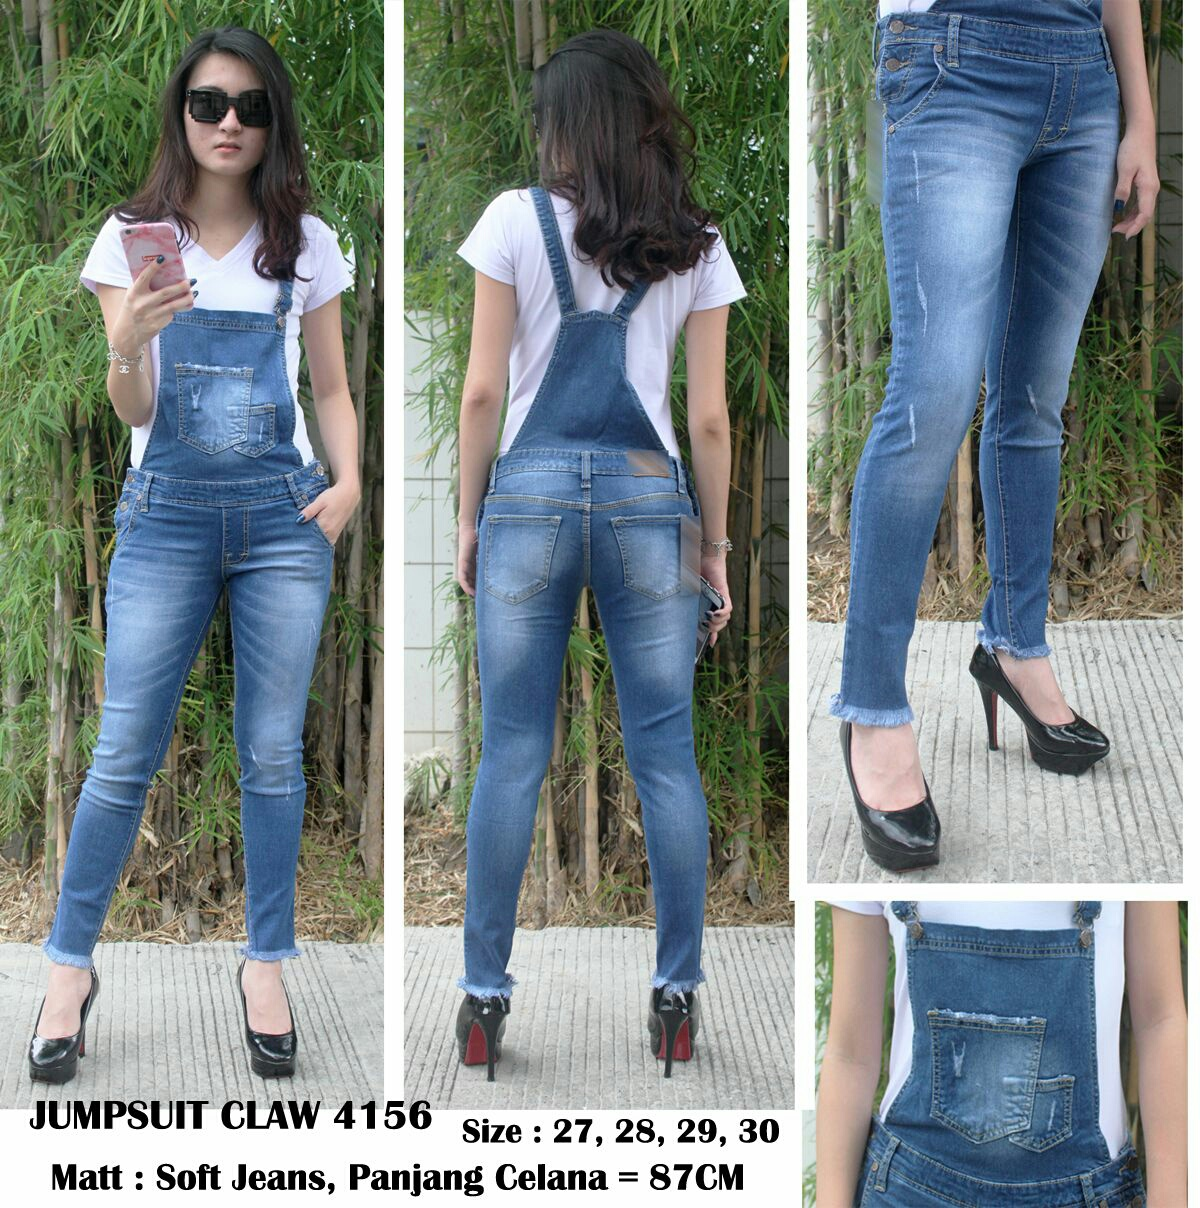 Jumpsuit Claw 4156